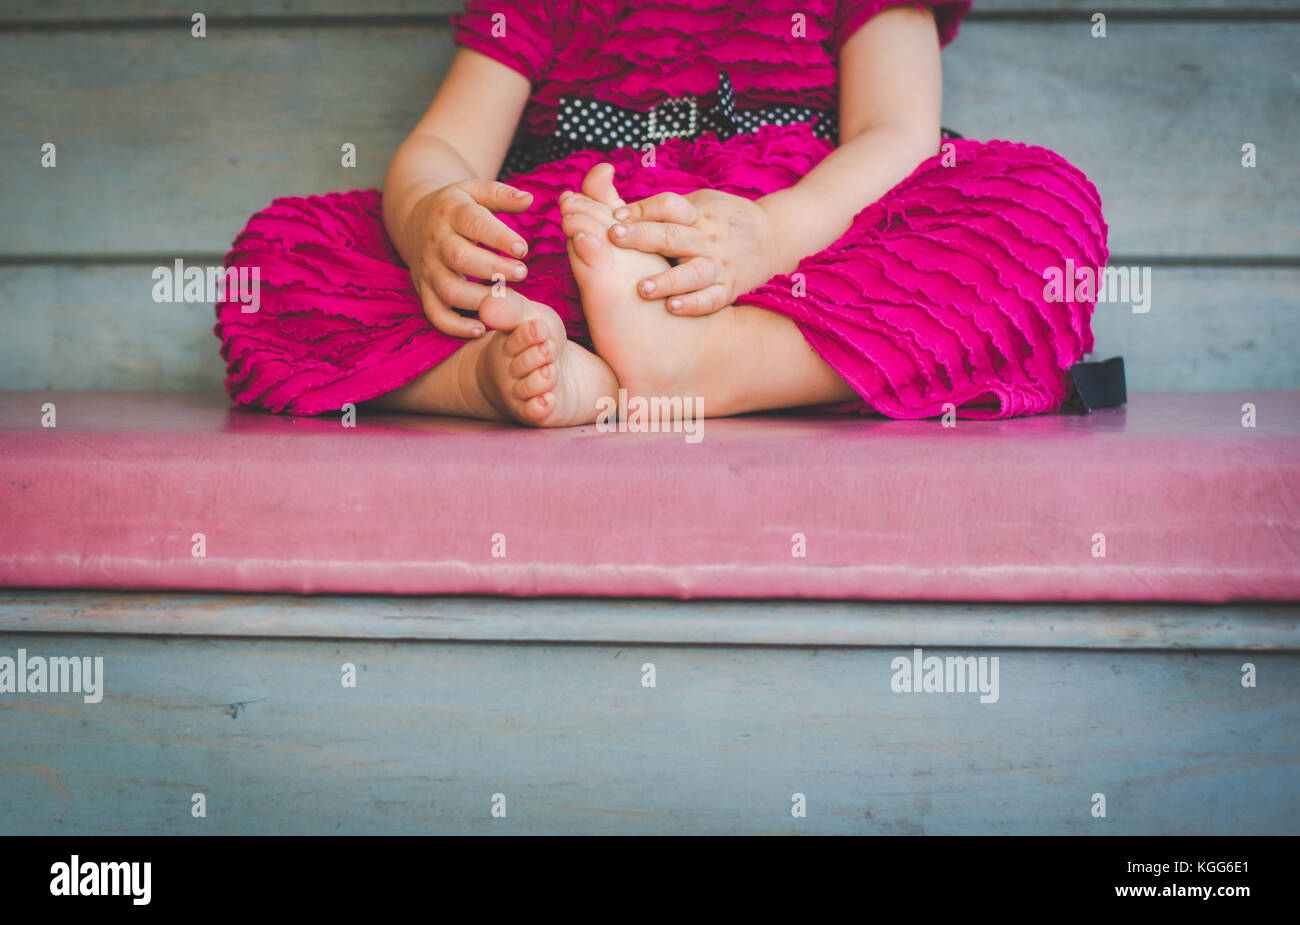 2-3 year old sitting on a bench with her bare feet visible. - Stock Image